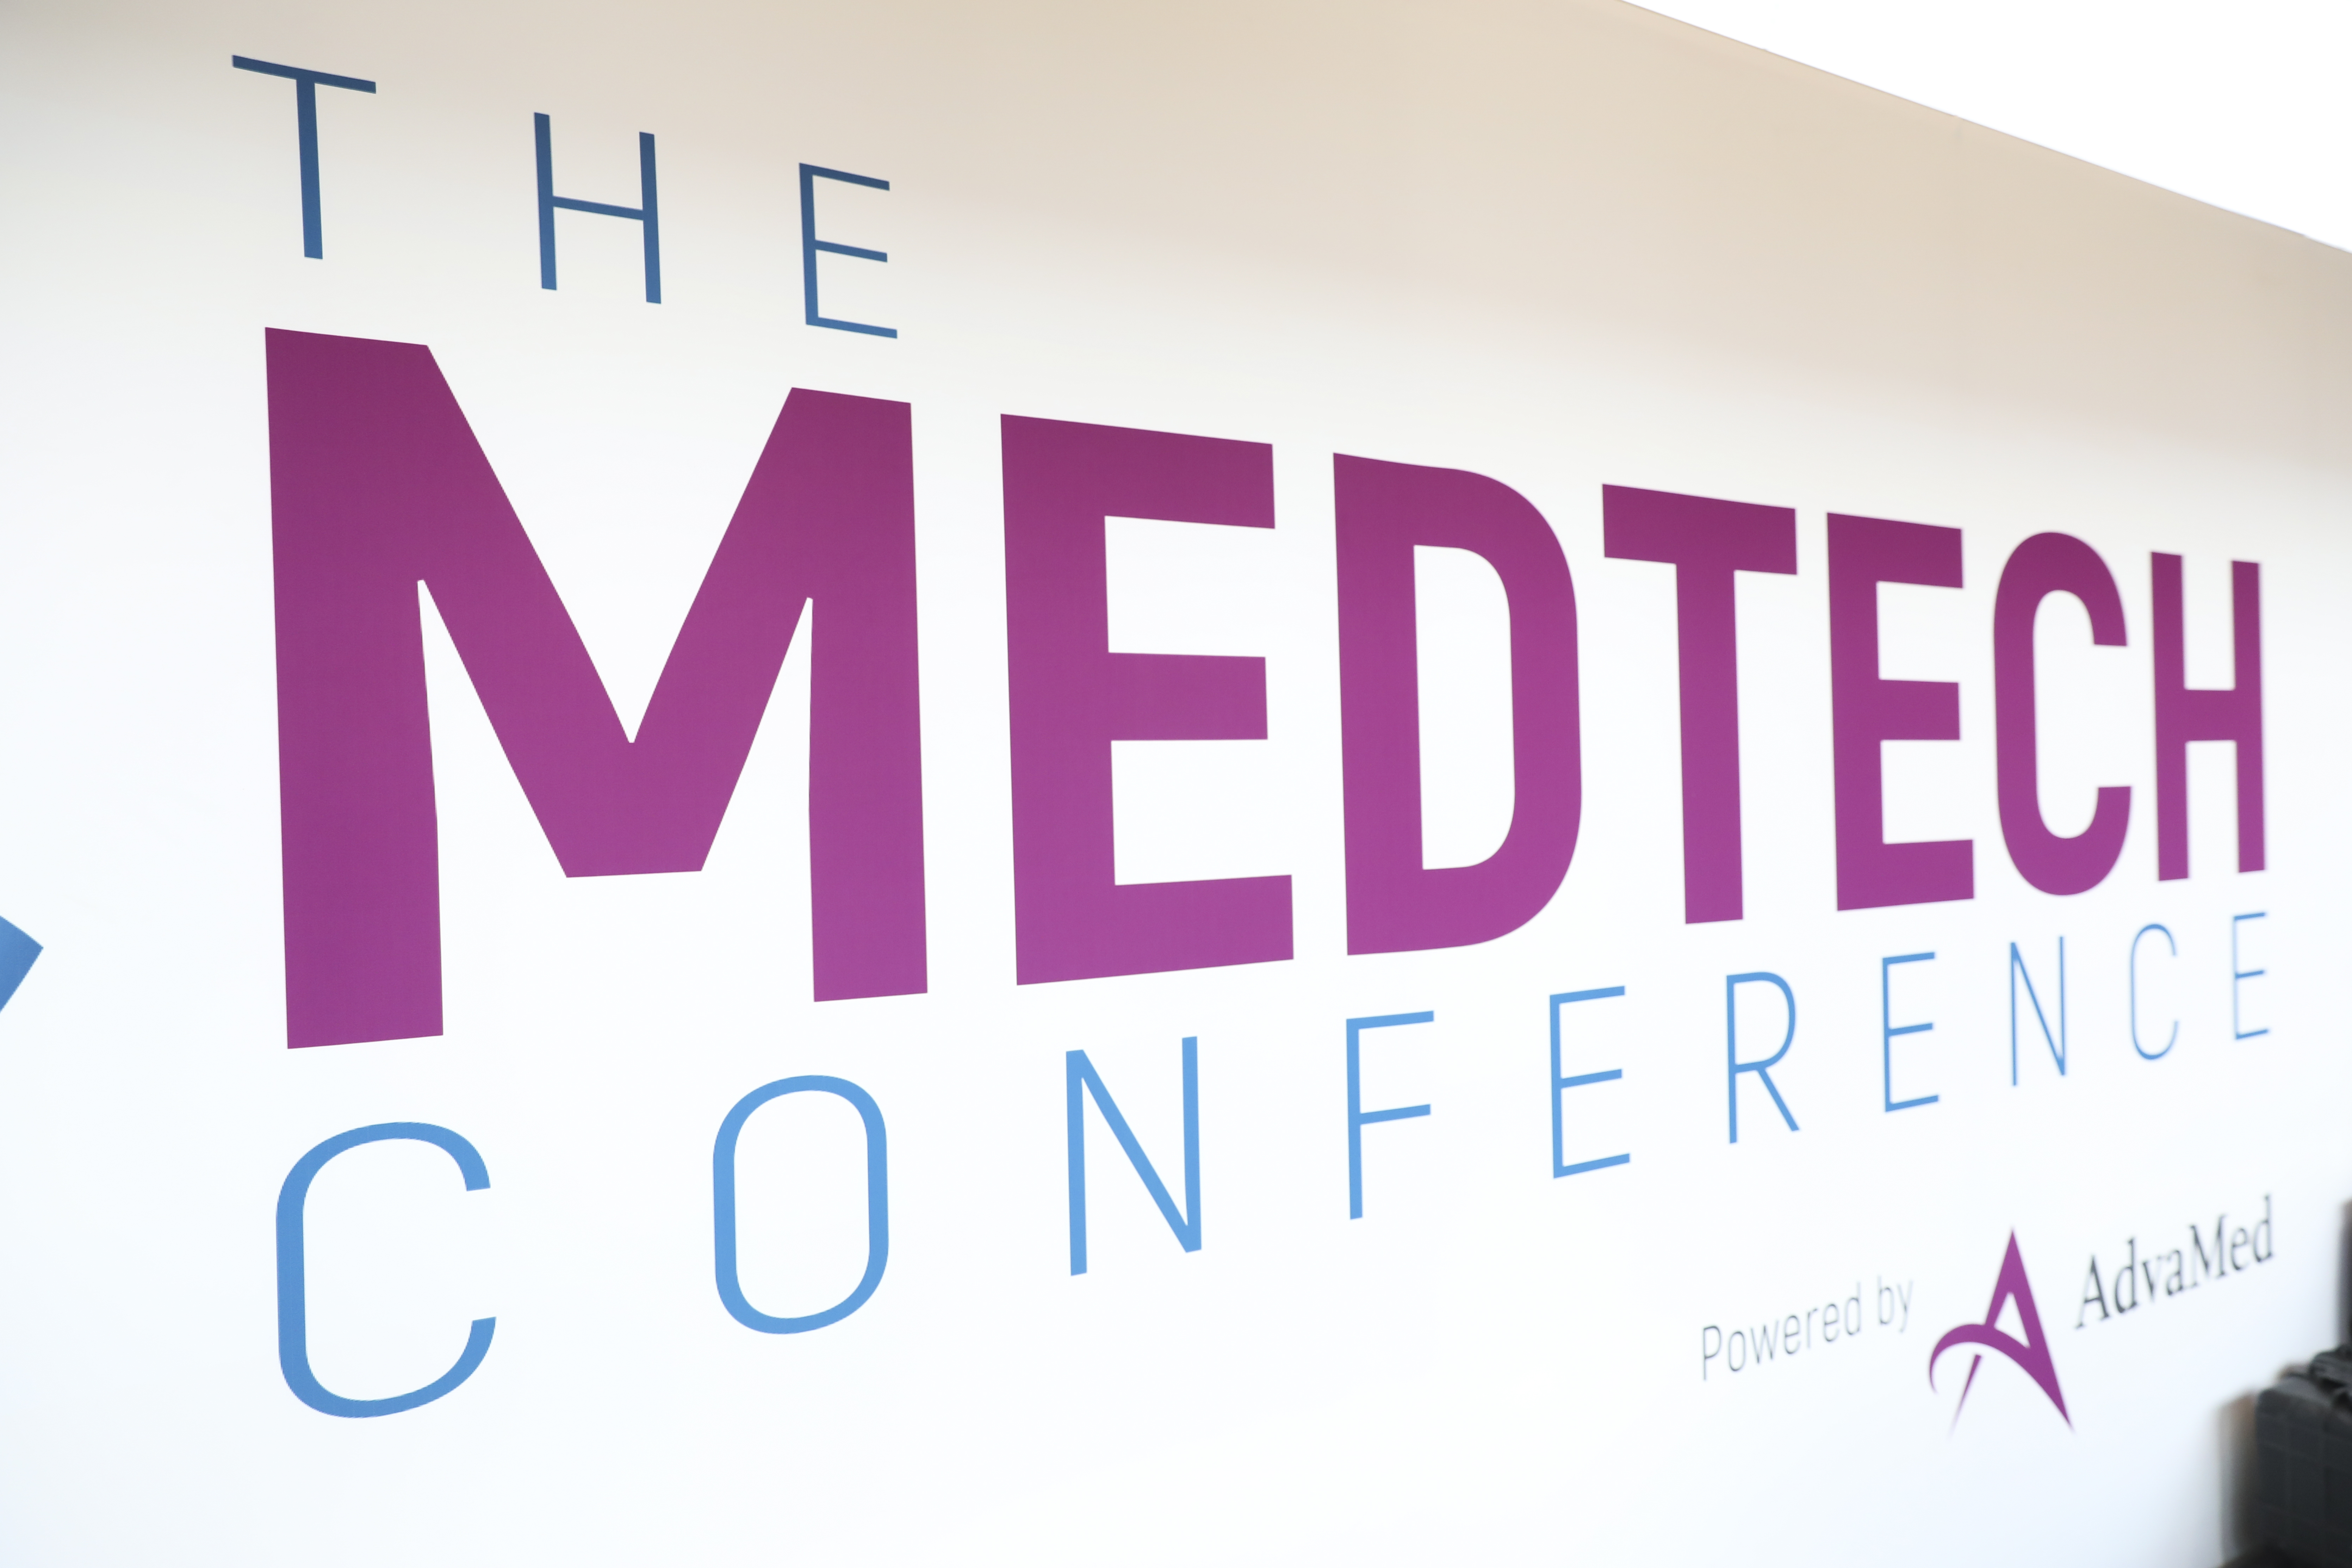 The MedTech Conference Powered by AdvaMed